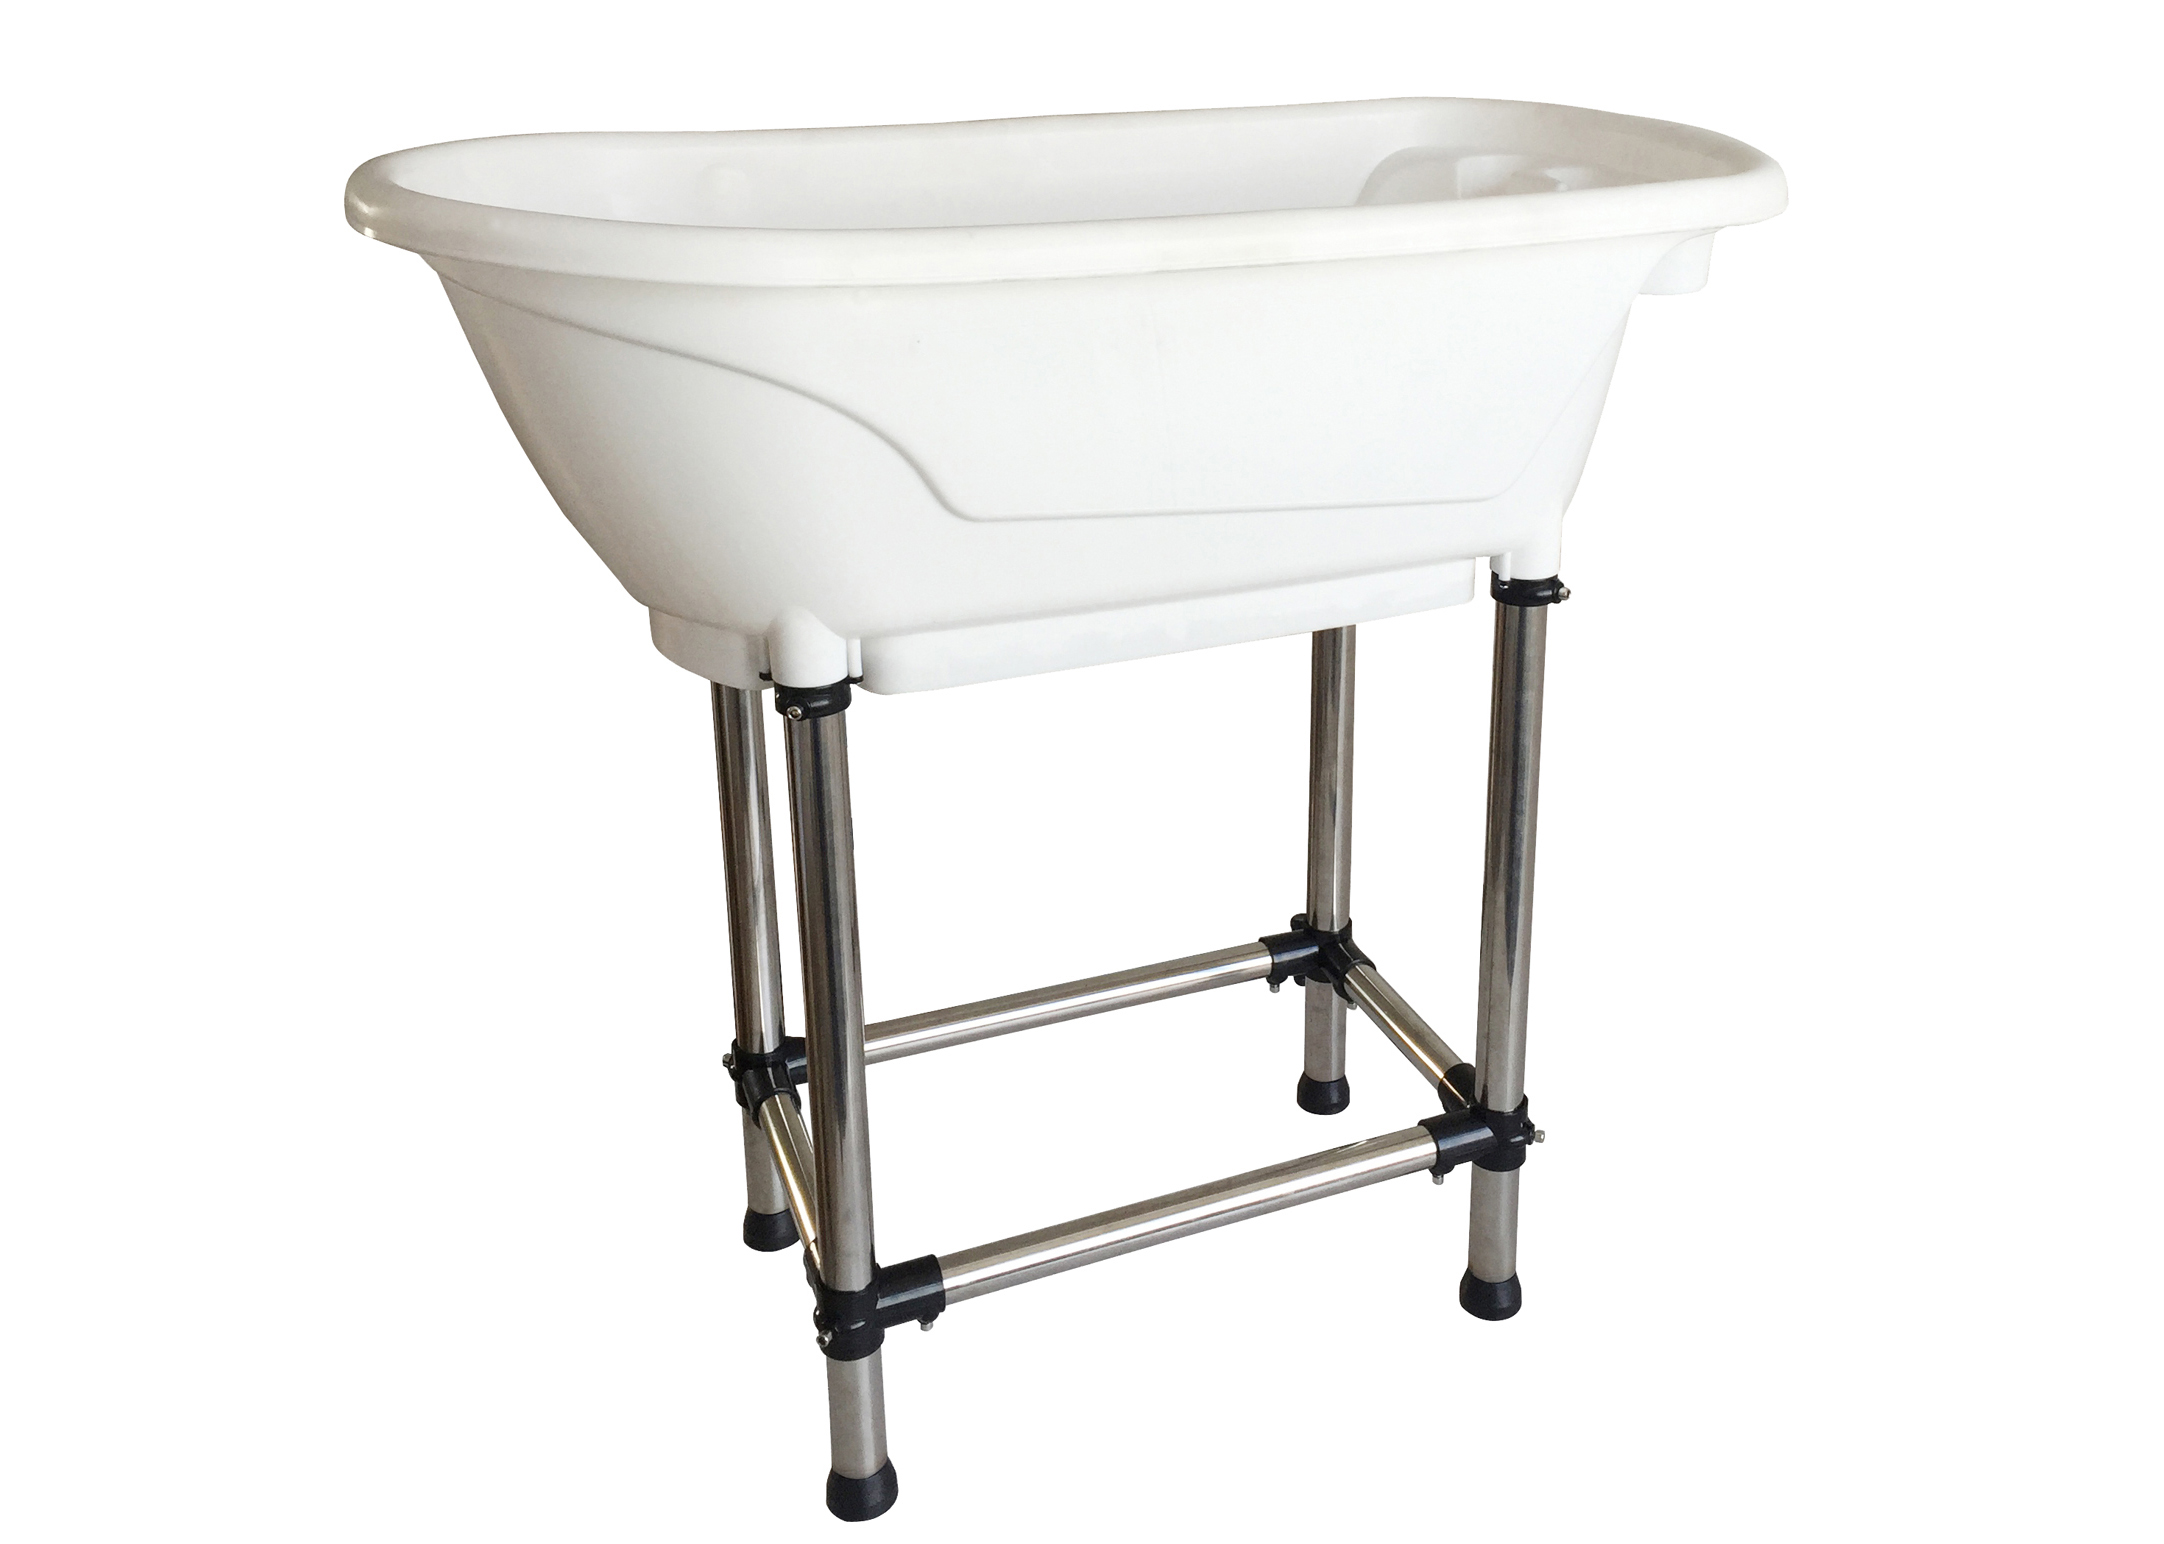 Show Tech Handy Tub M 96x50x91cm Bath For Dogs And Cats